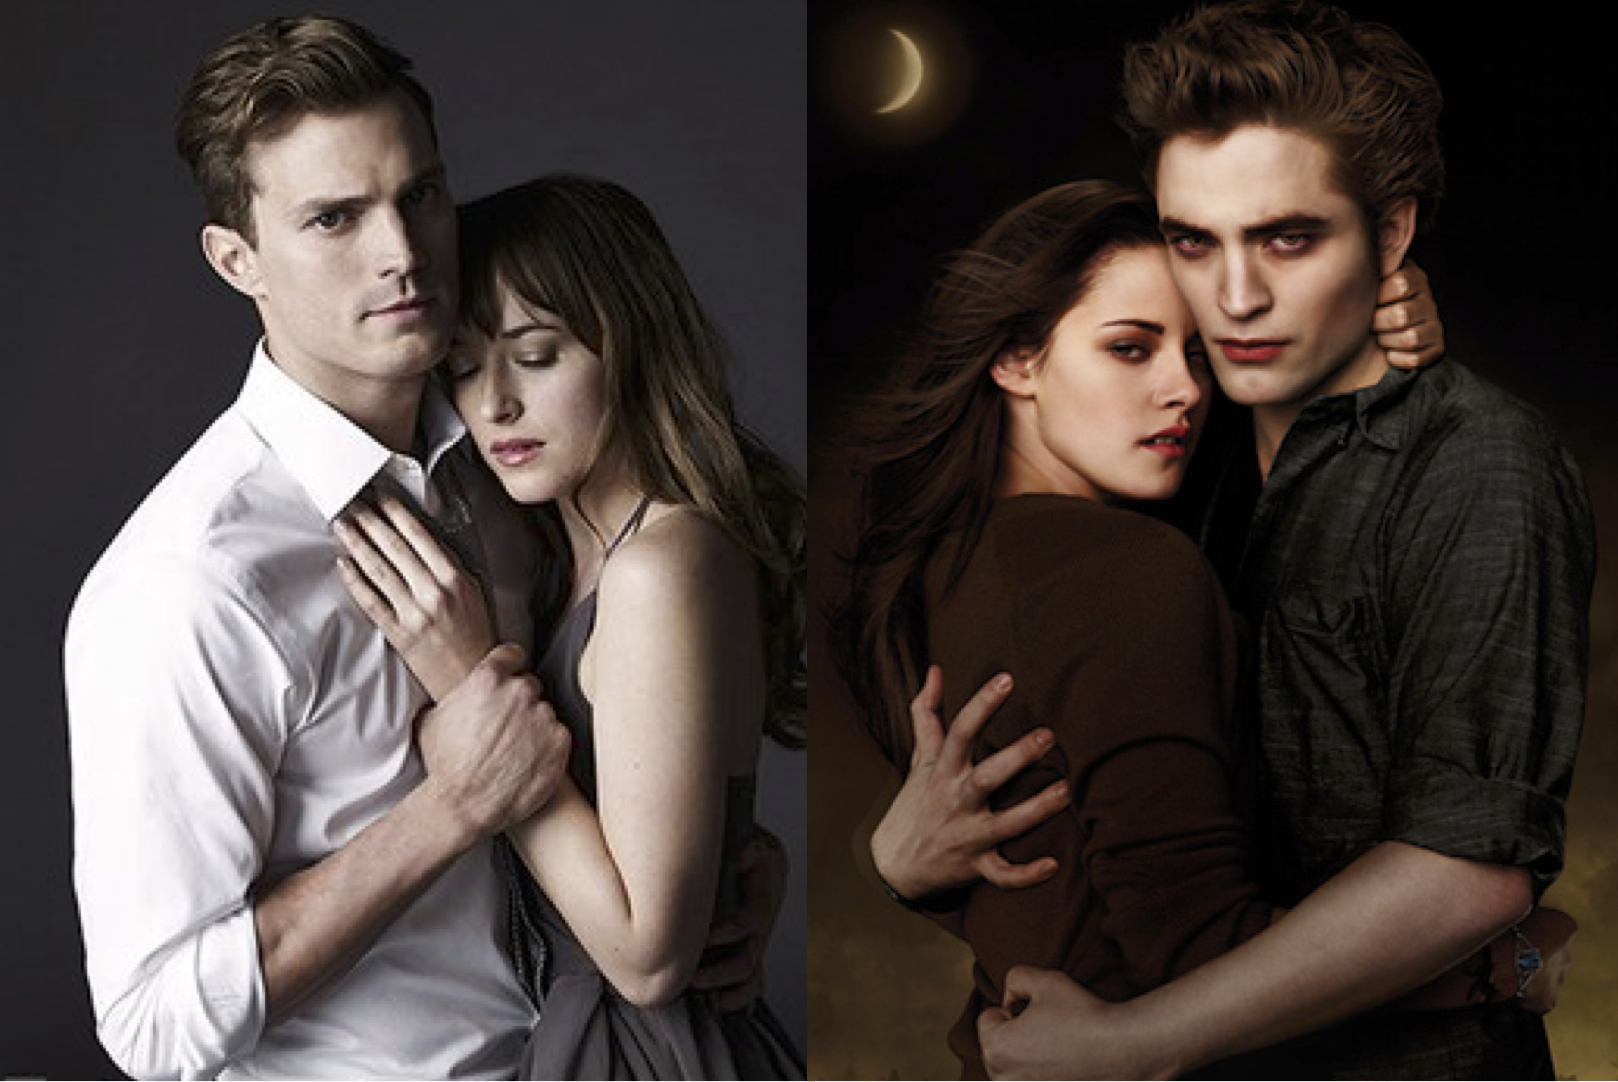 are bella and edward dating in real life Twilight timeline 2500 bc amun influenza epidemic claims the life of edward's parents – bella, edward, jacob.